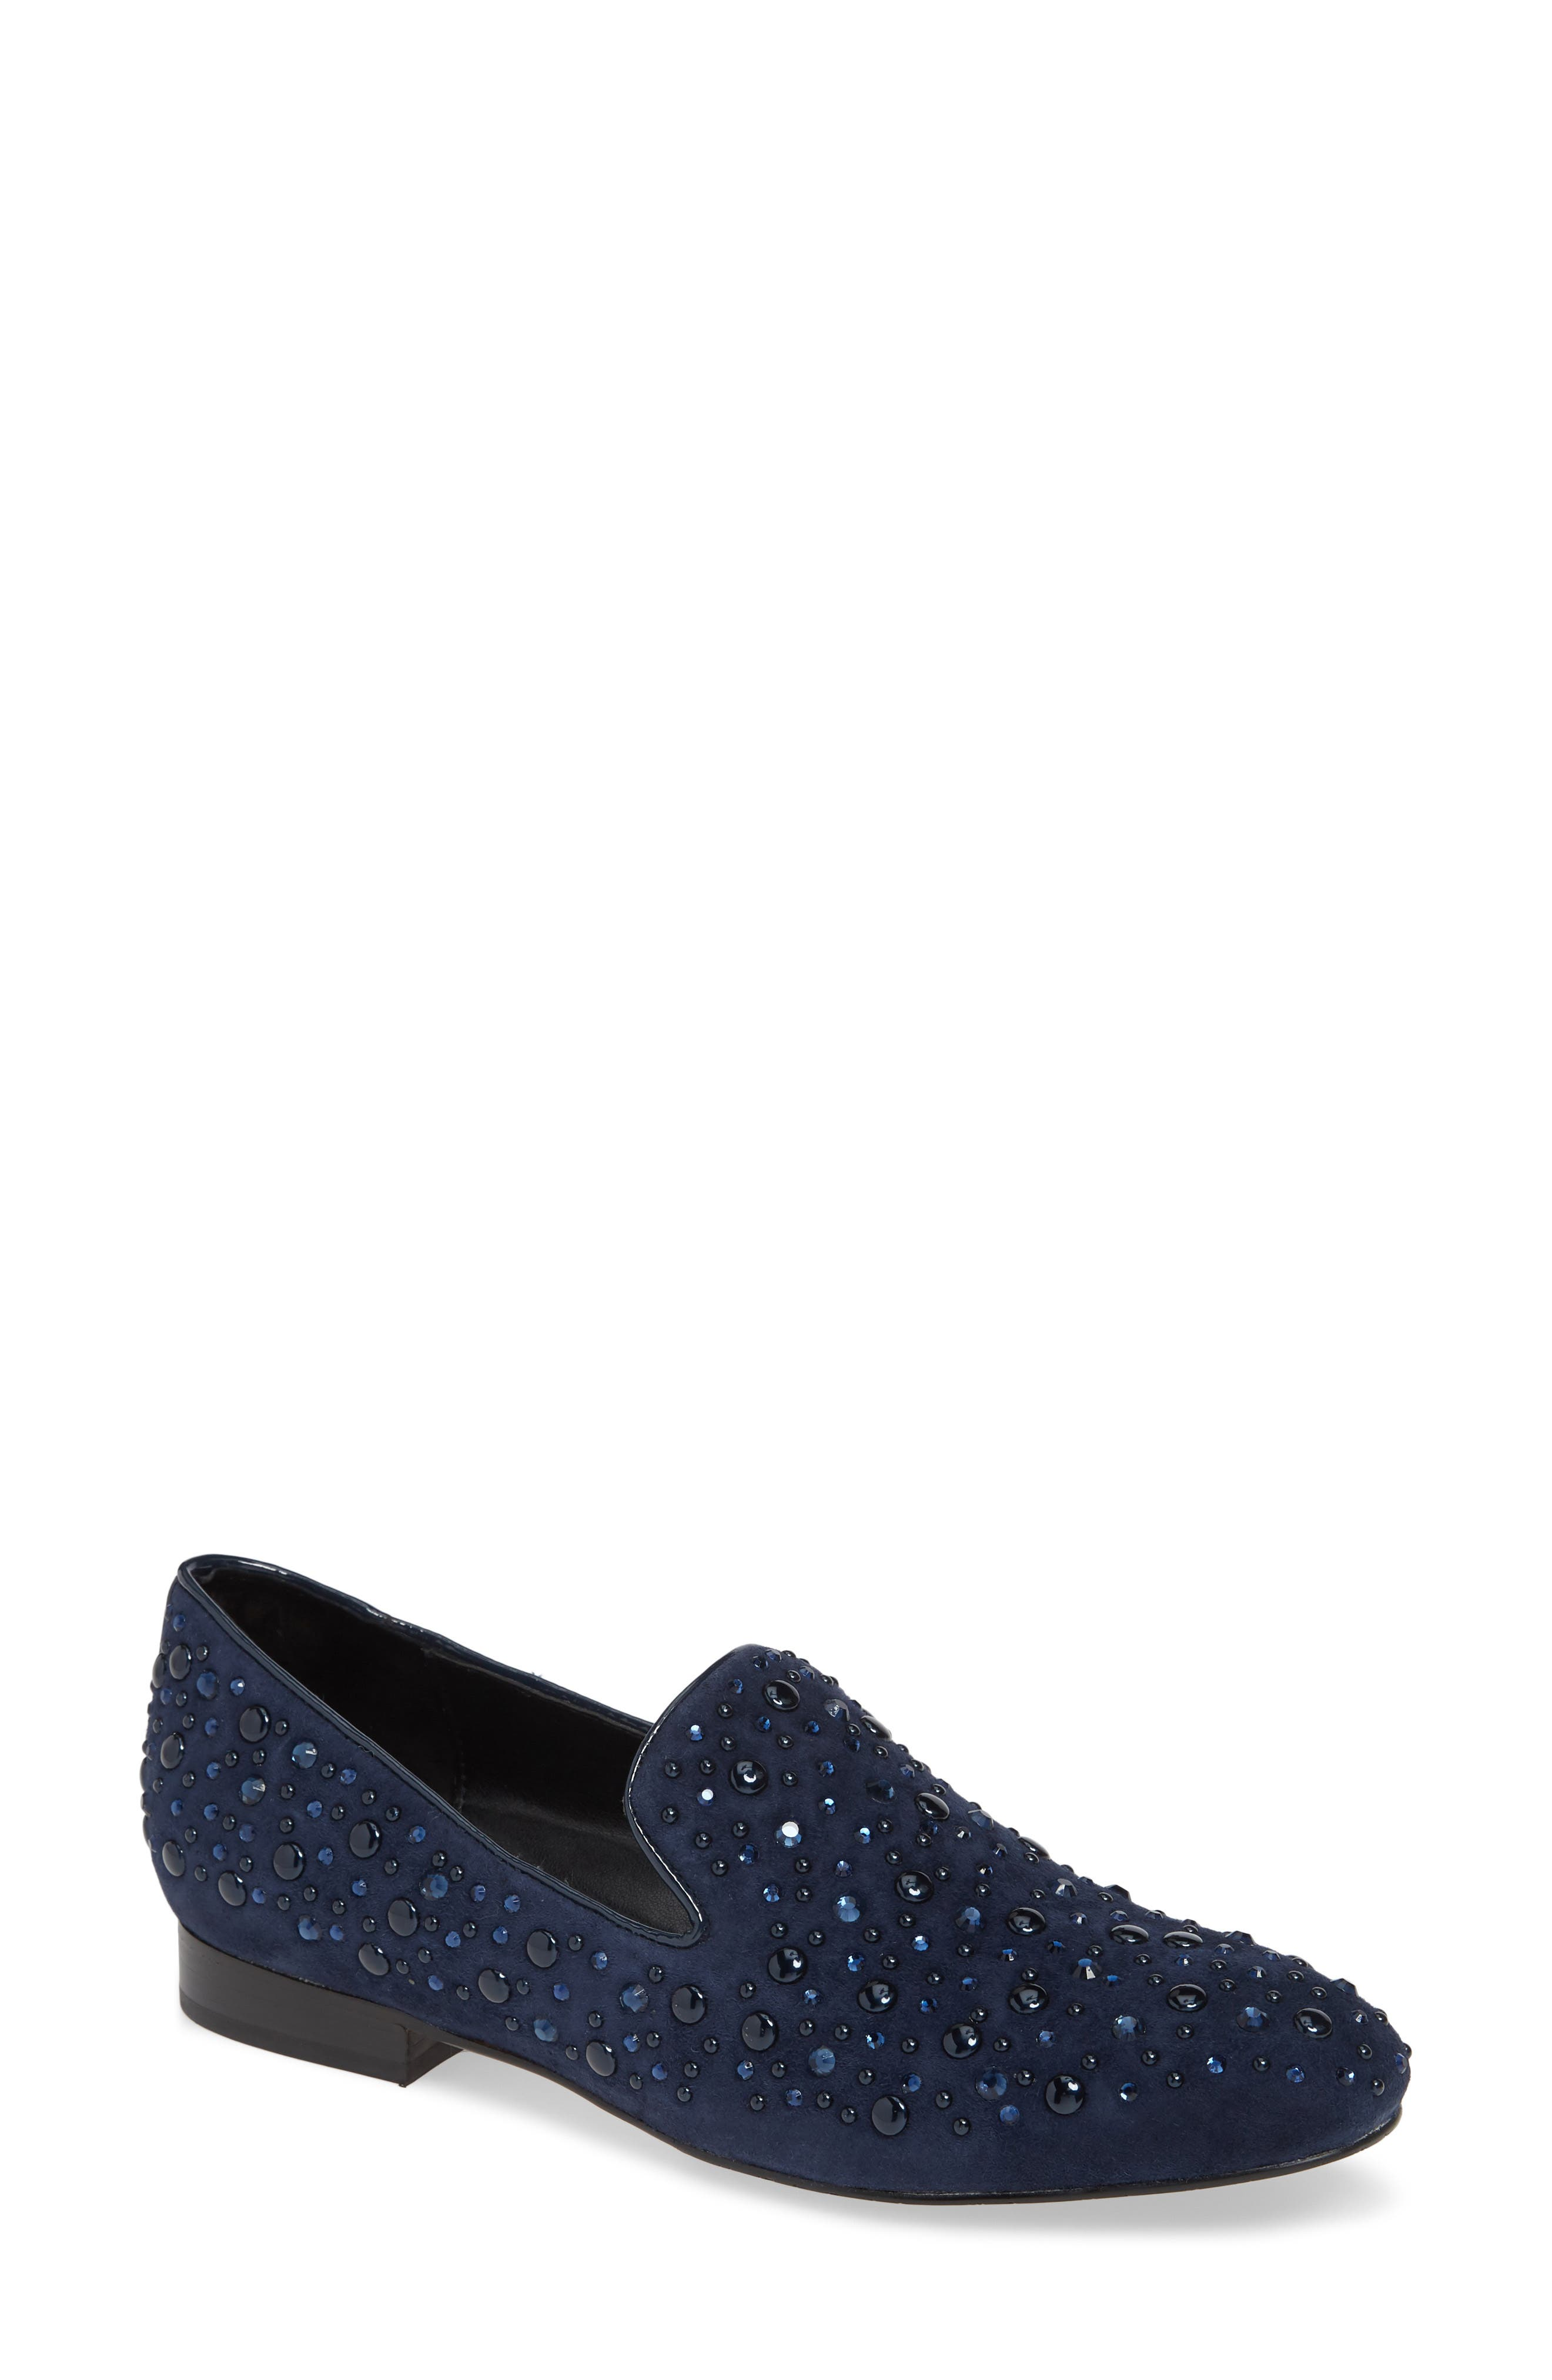 Lynn Loafer Flat,                             Main thumbnail 1, color,                             NAVY SUEDE